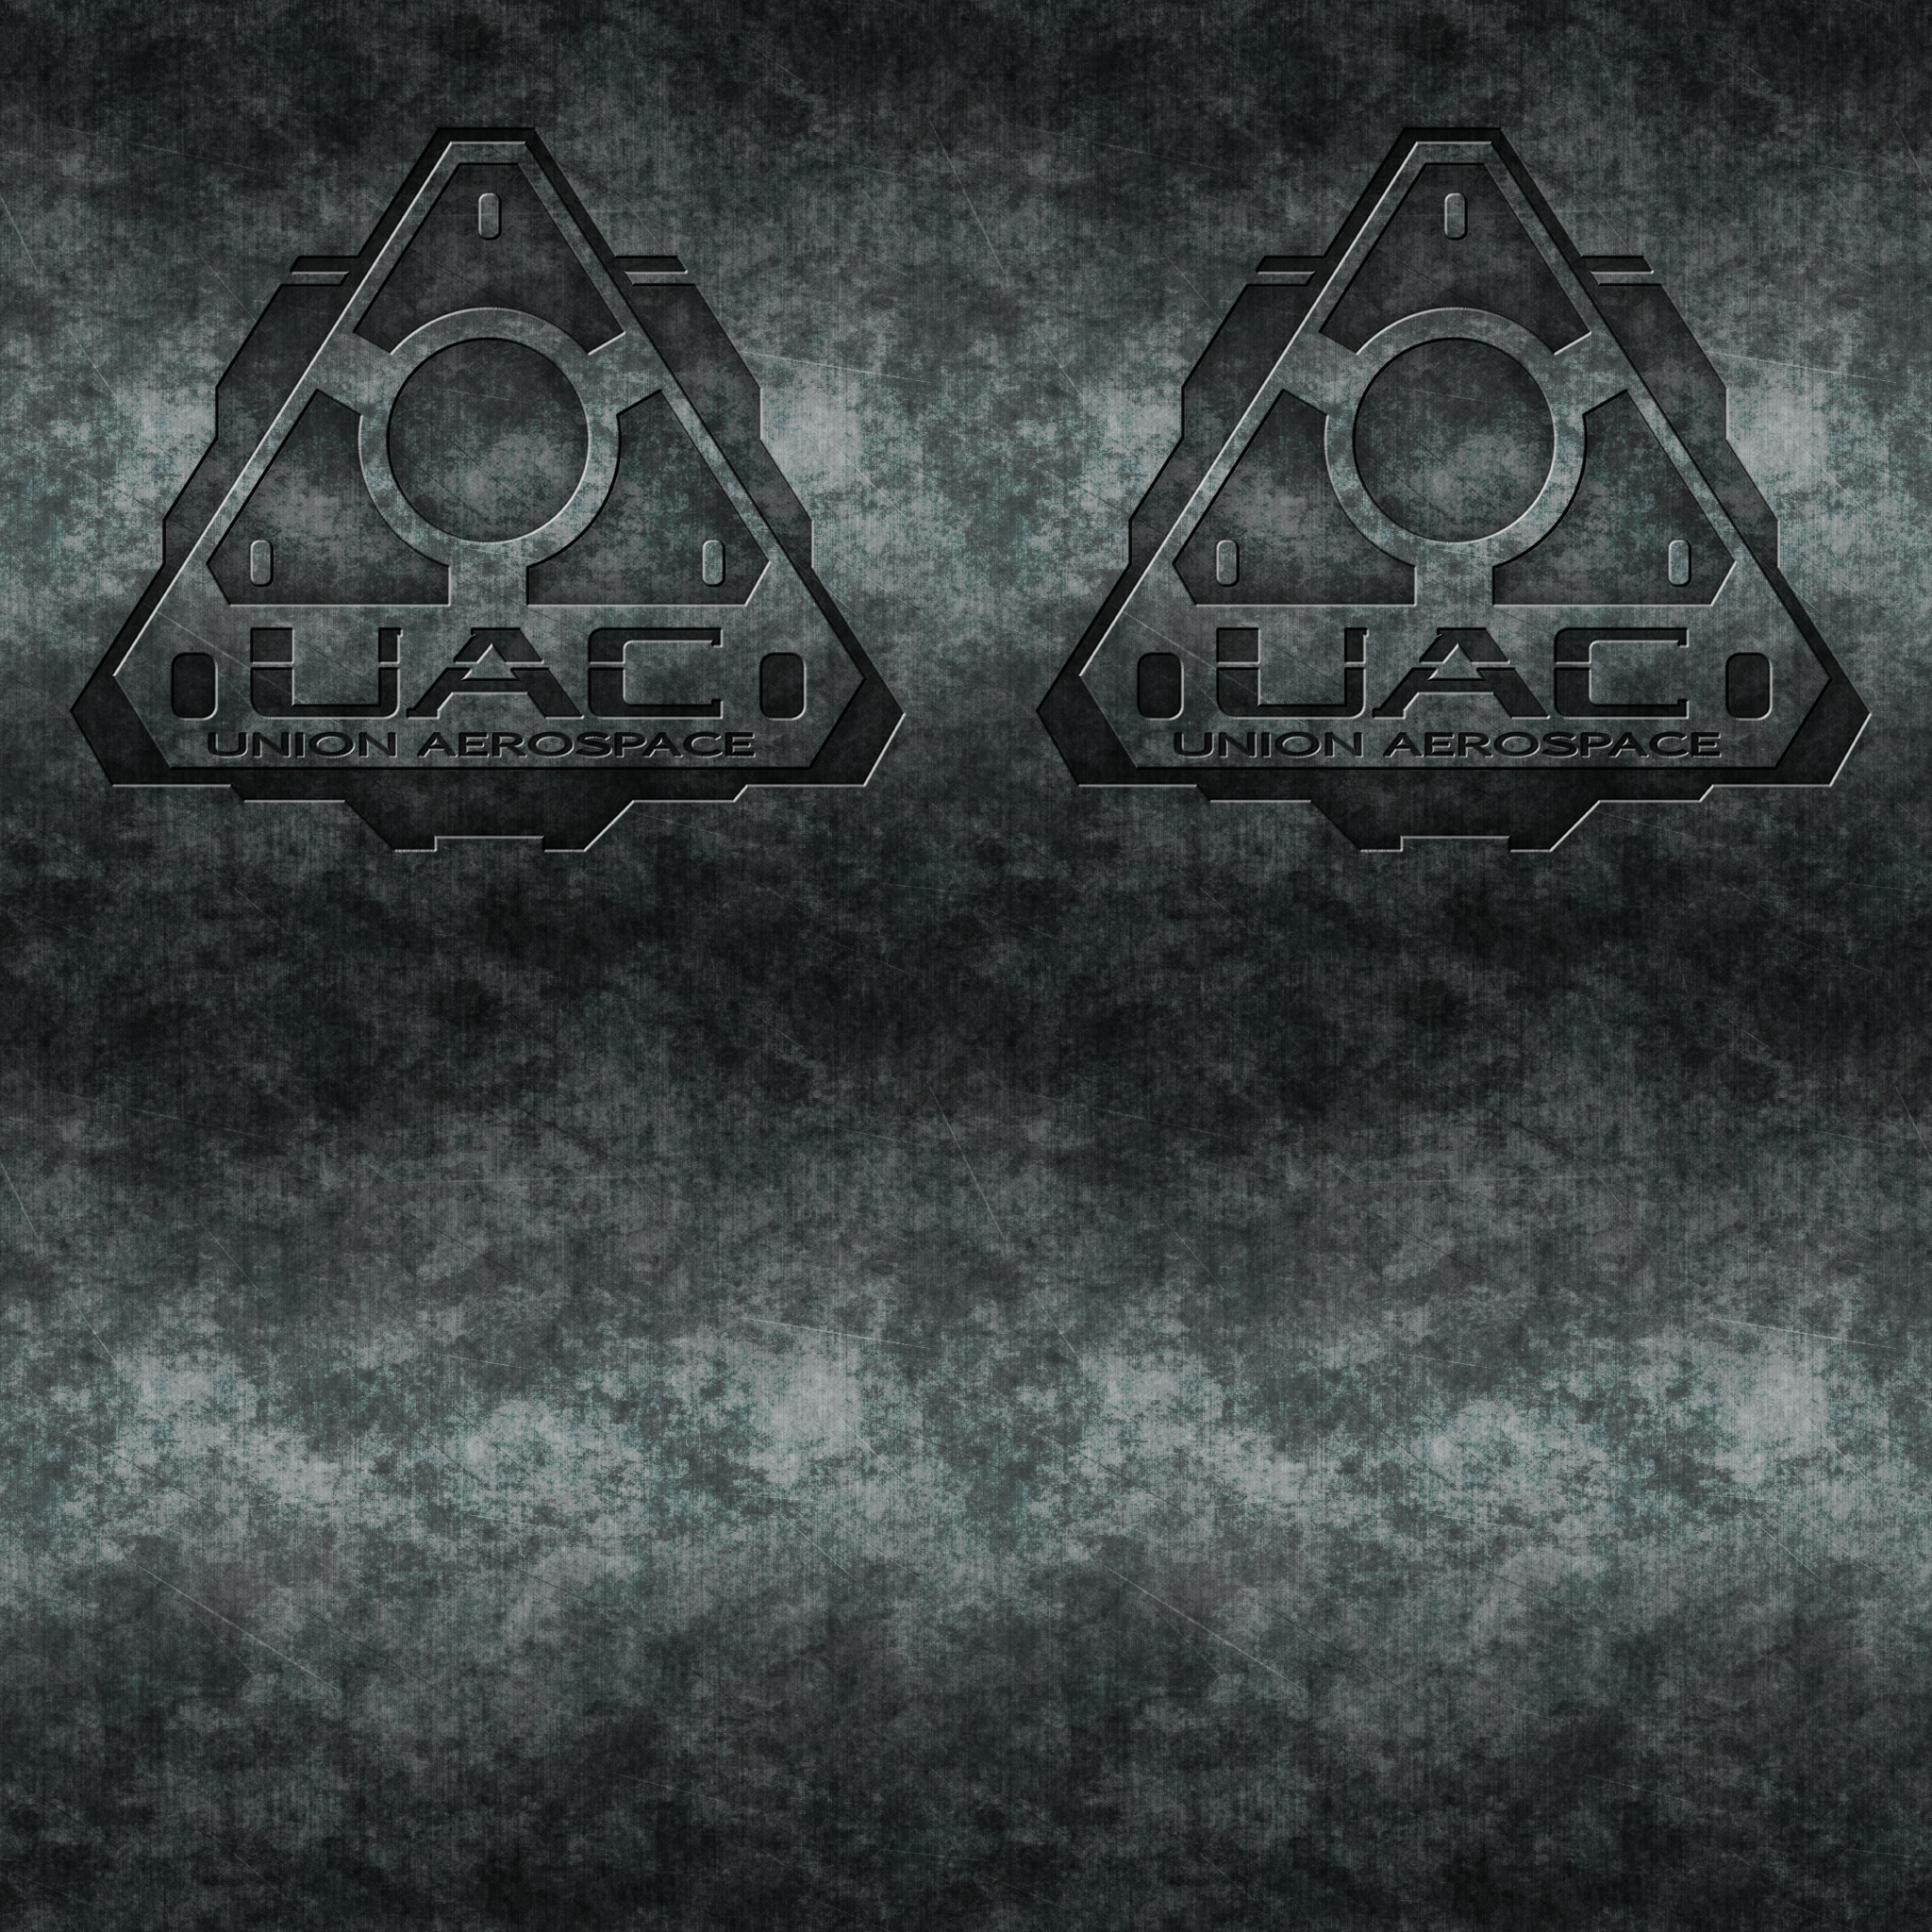 Silver Wall with UAC Logos by Hoover1979